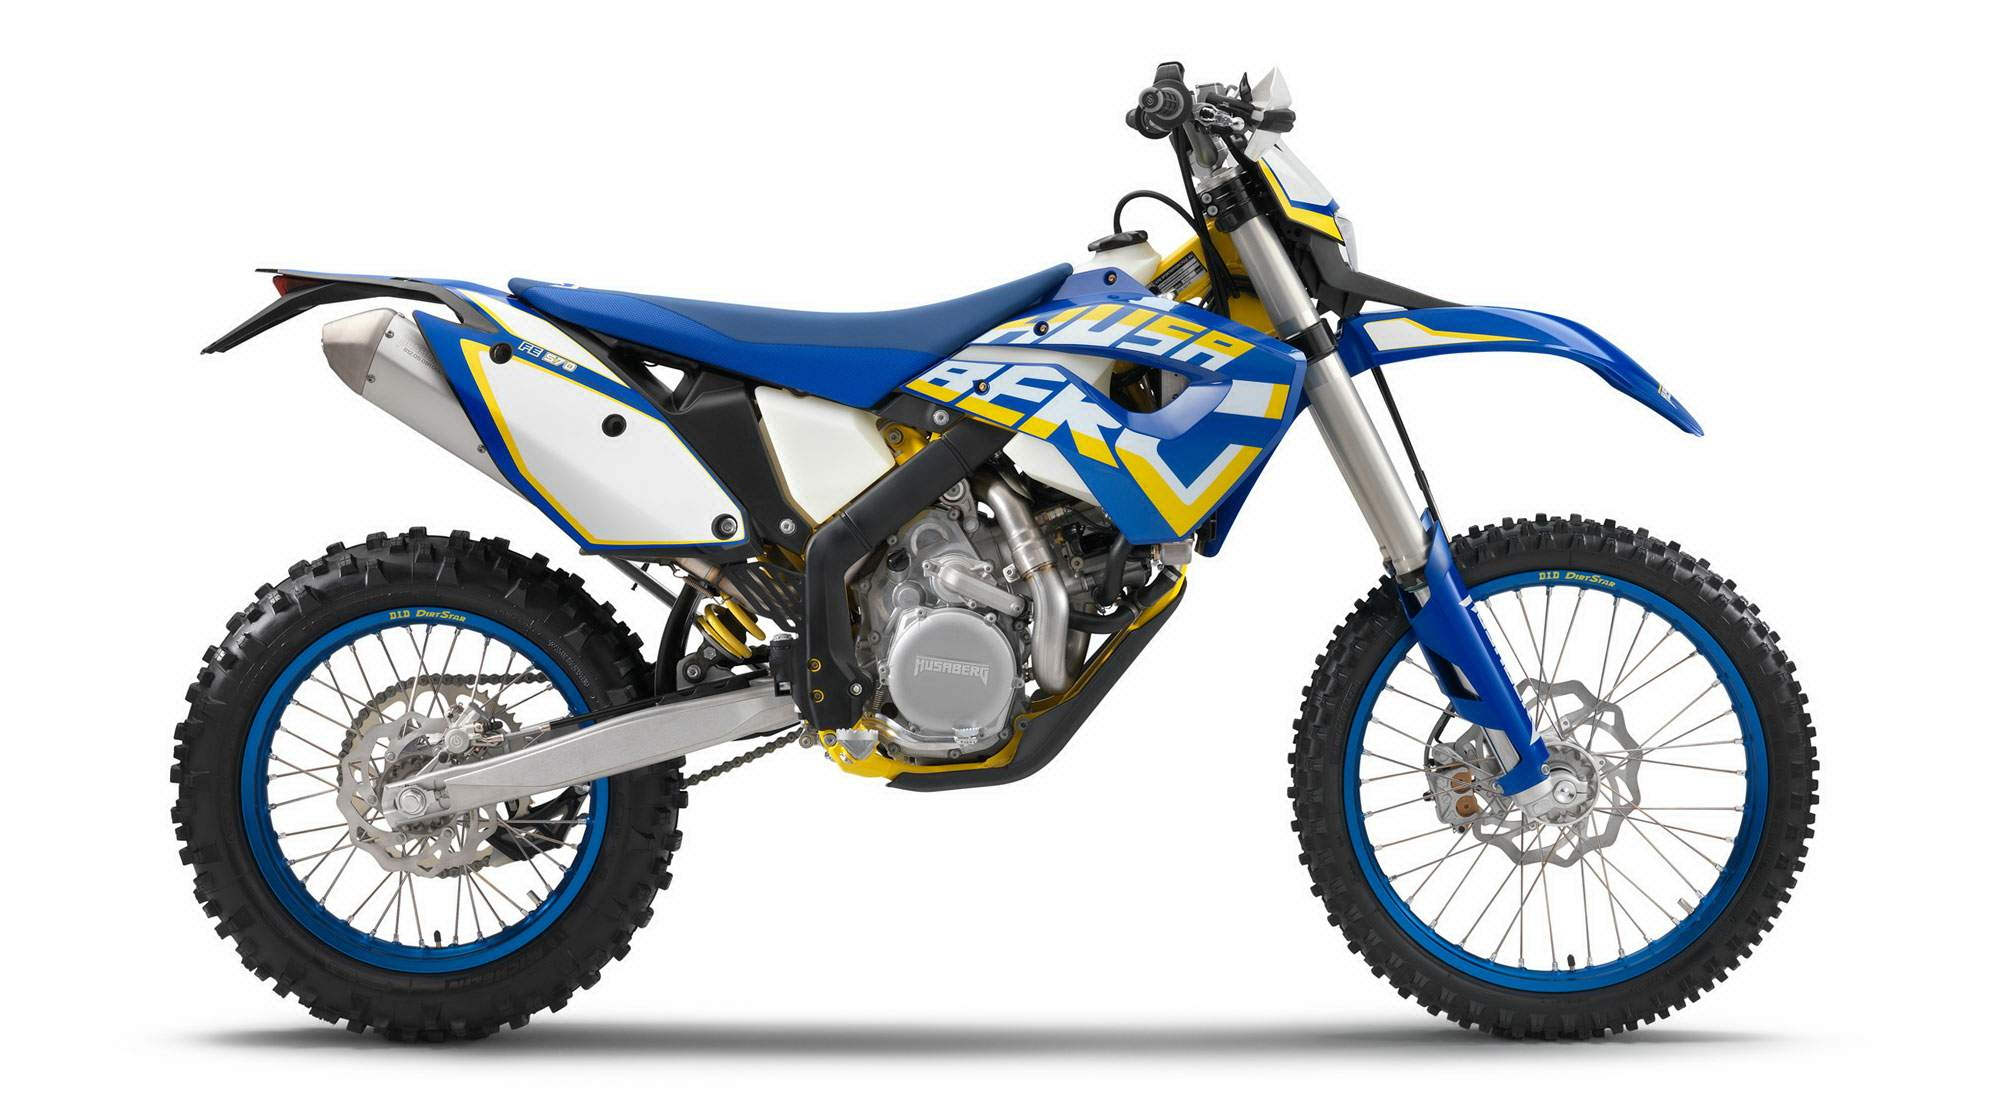 Husaberg FE 570 Enduro technical specifications